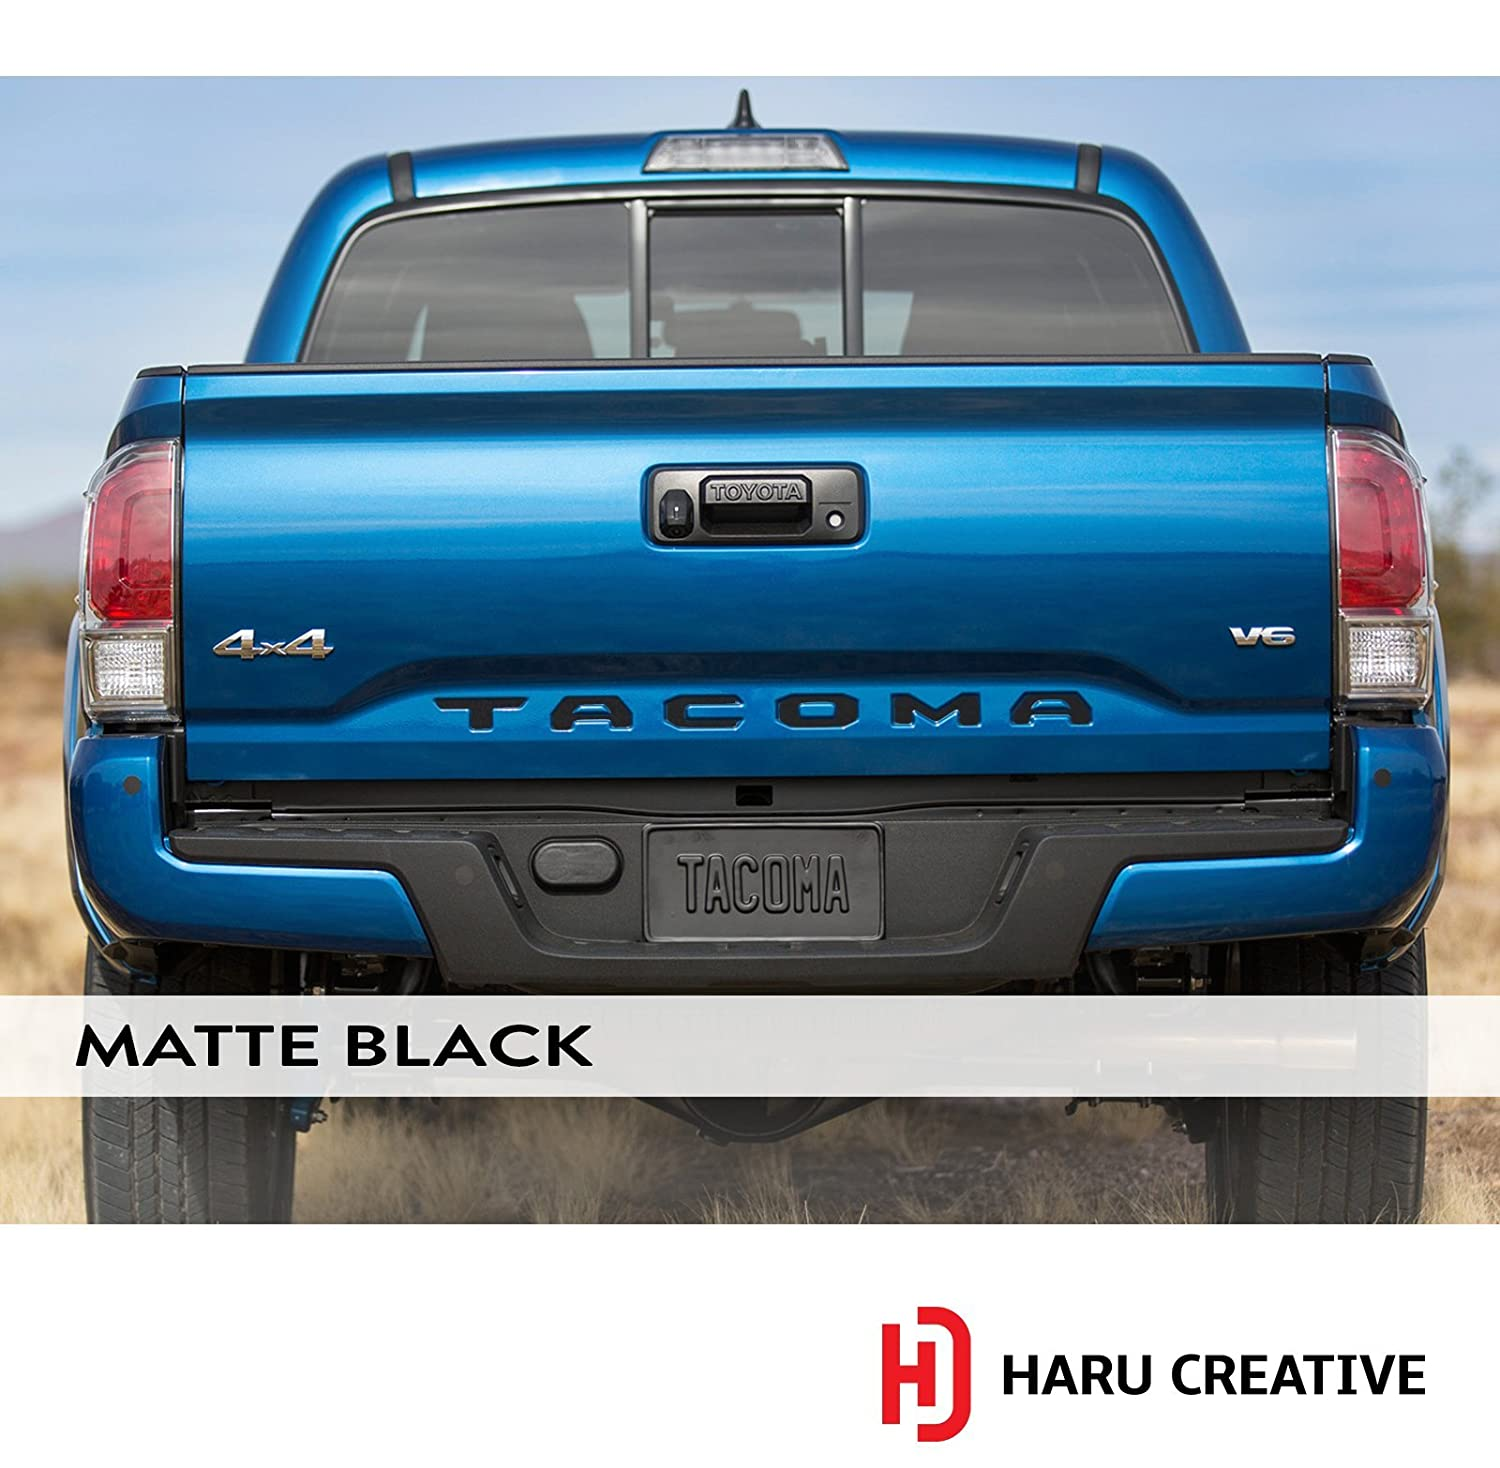 Haru Creative Rear Trunk Tailgate Letter Insert Decal Compatible with and Fits Toyota Tacoma 2016 2017 2018 2019 Matte Black